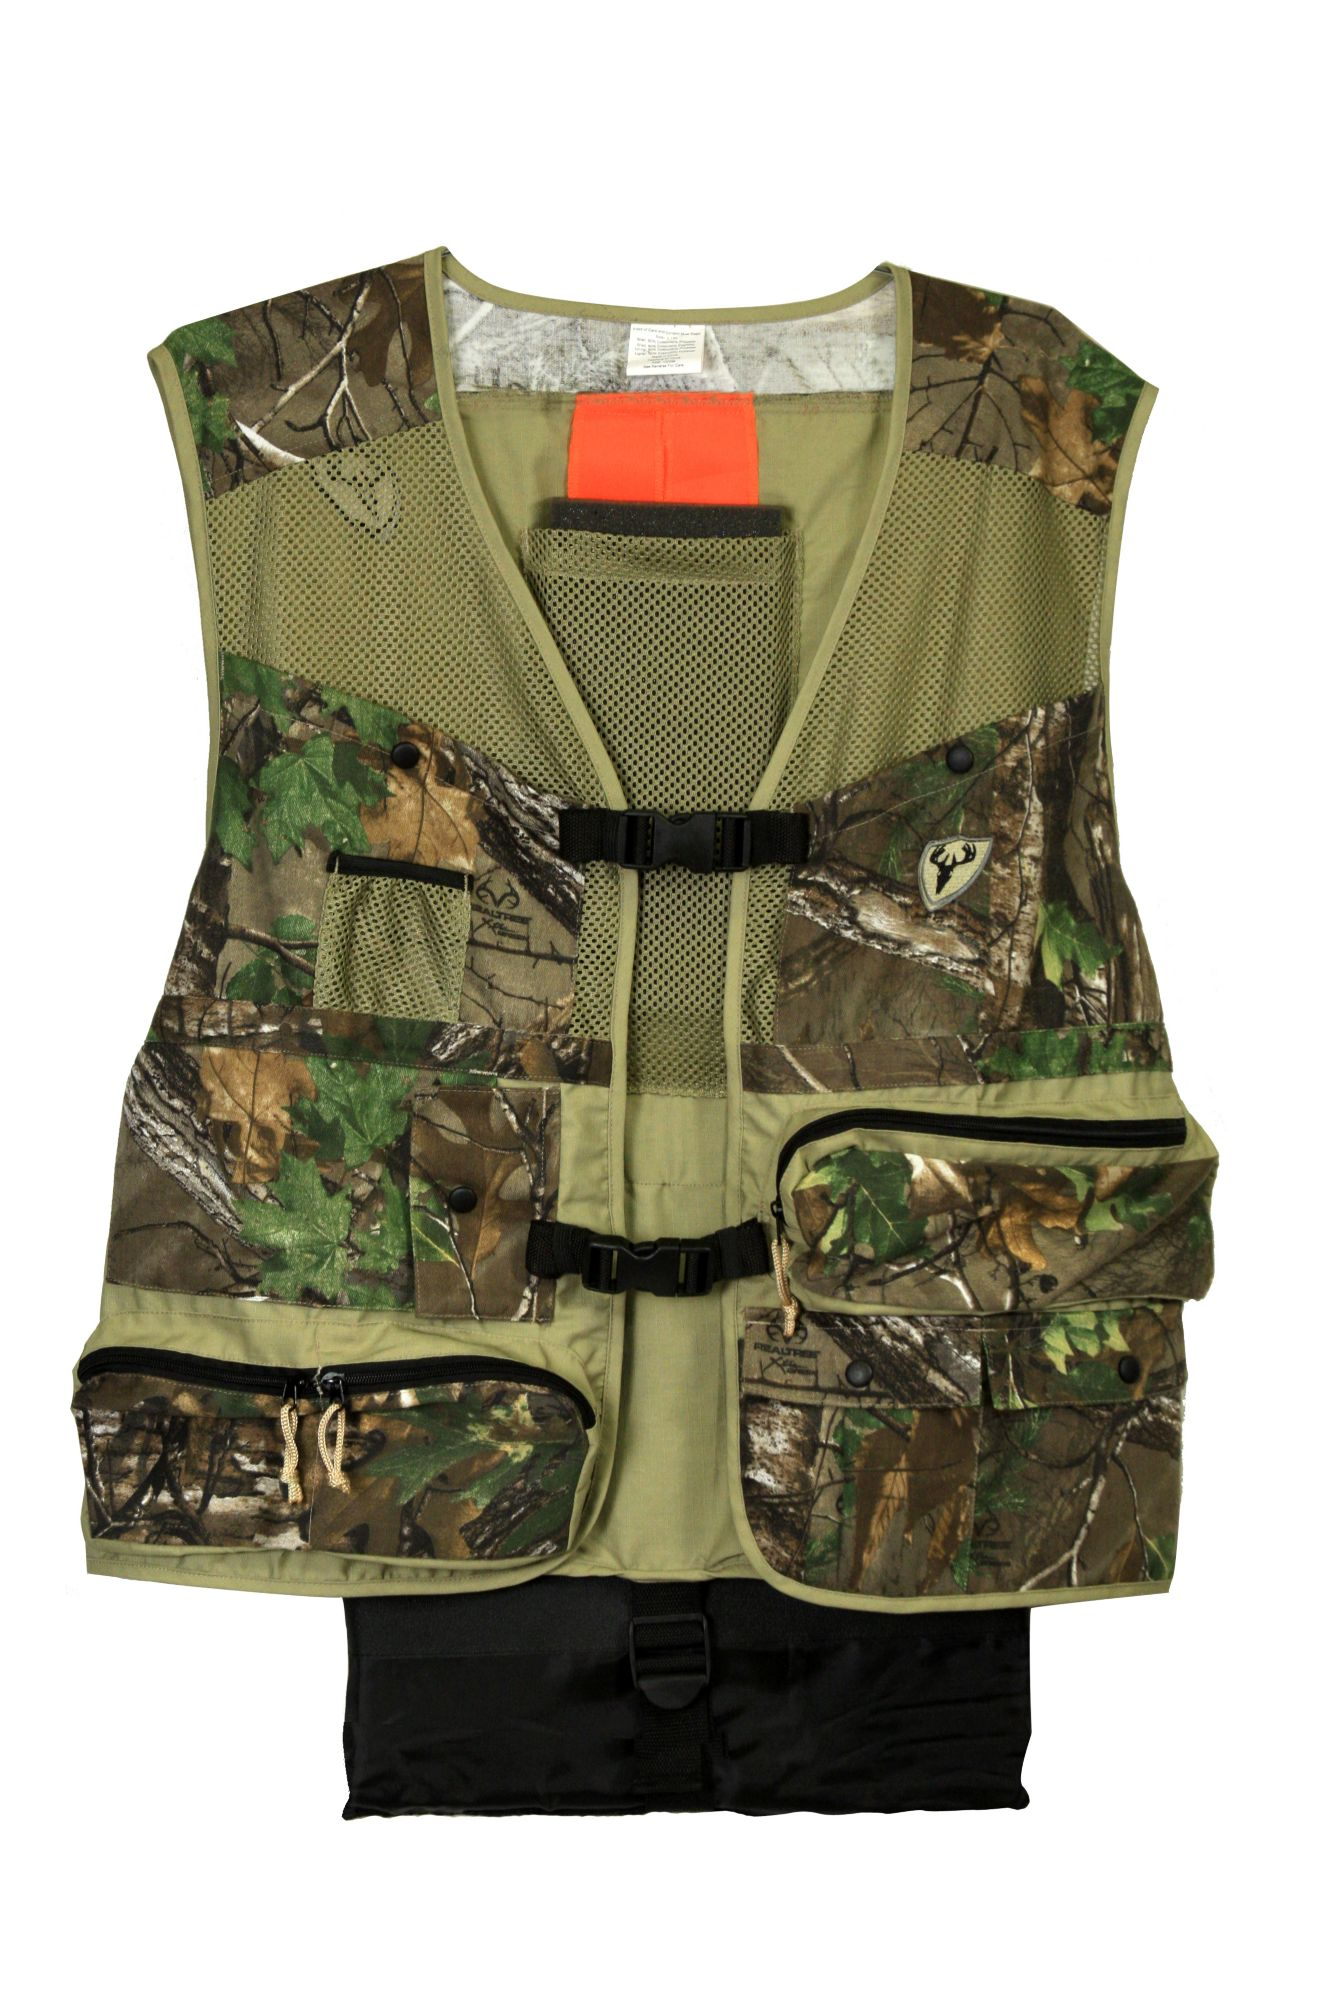 Blocker Outdoors Shield Series Torched Turkey Vest, Men's, Size: Medium/Large, Green thumbnail